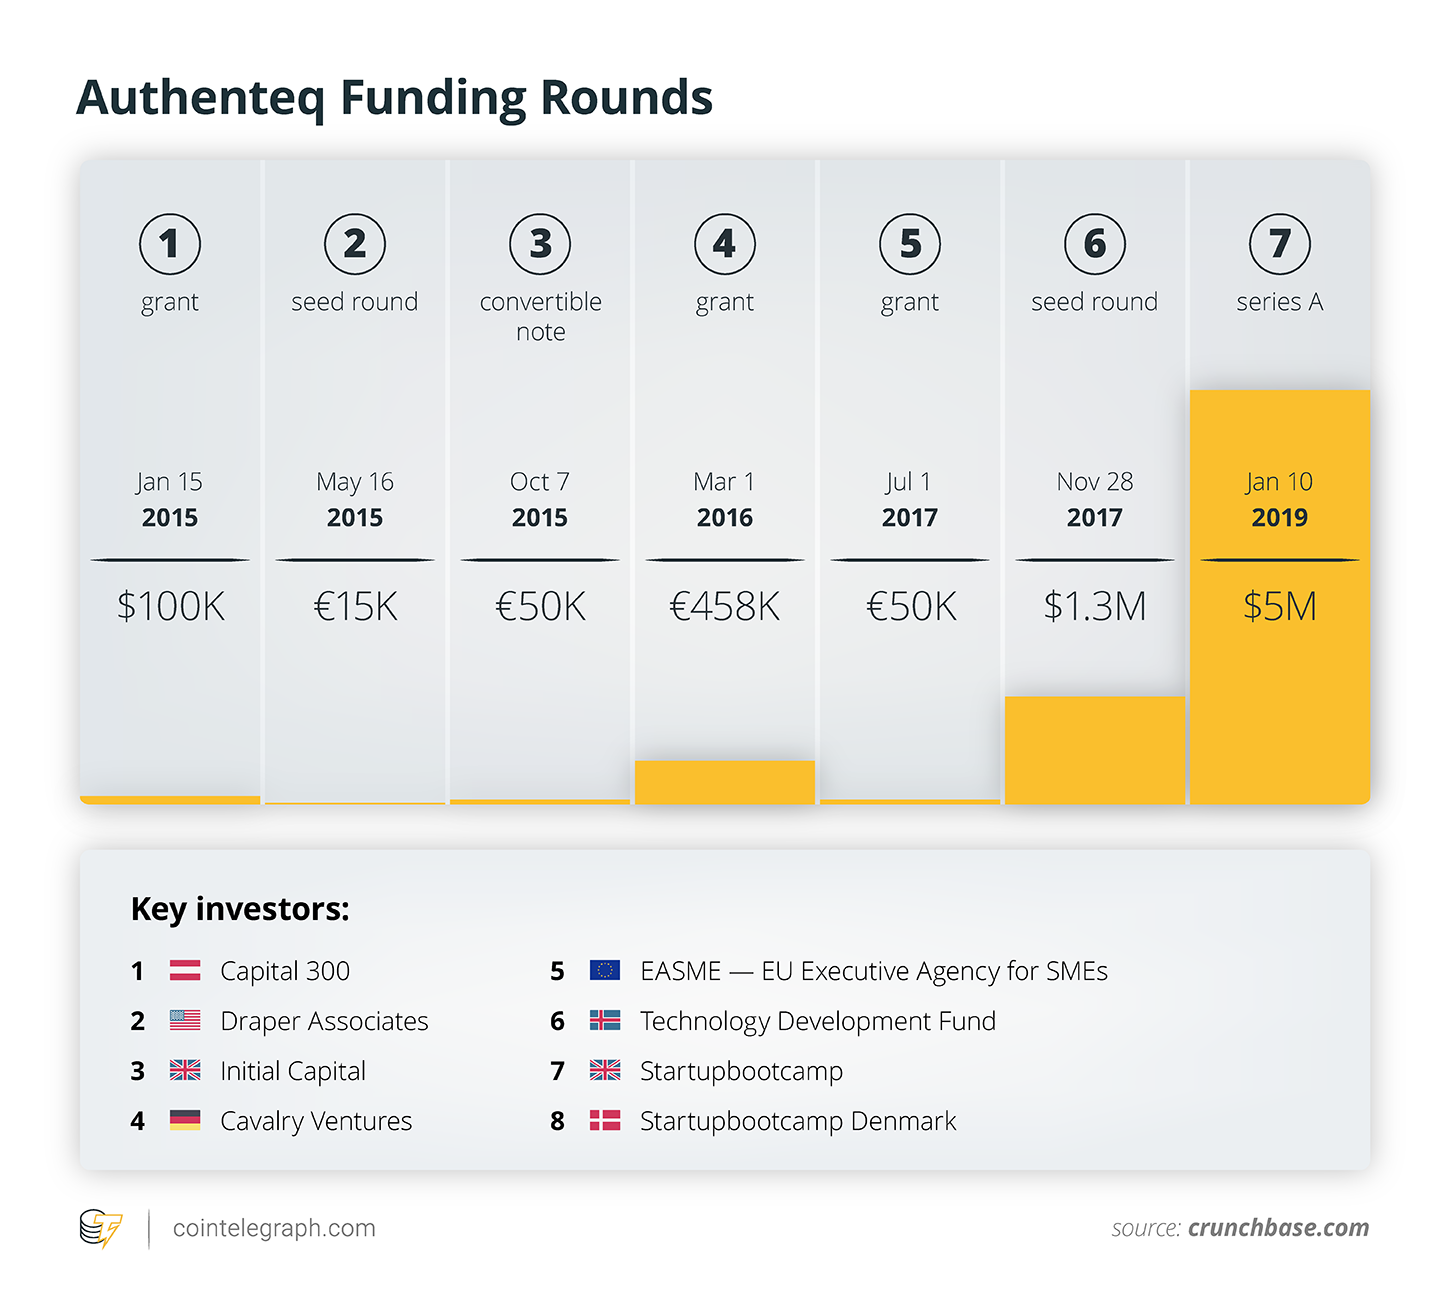 Authenteq funding rounds and key investors